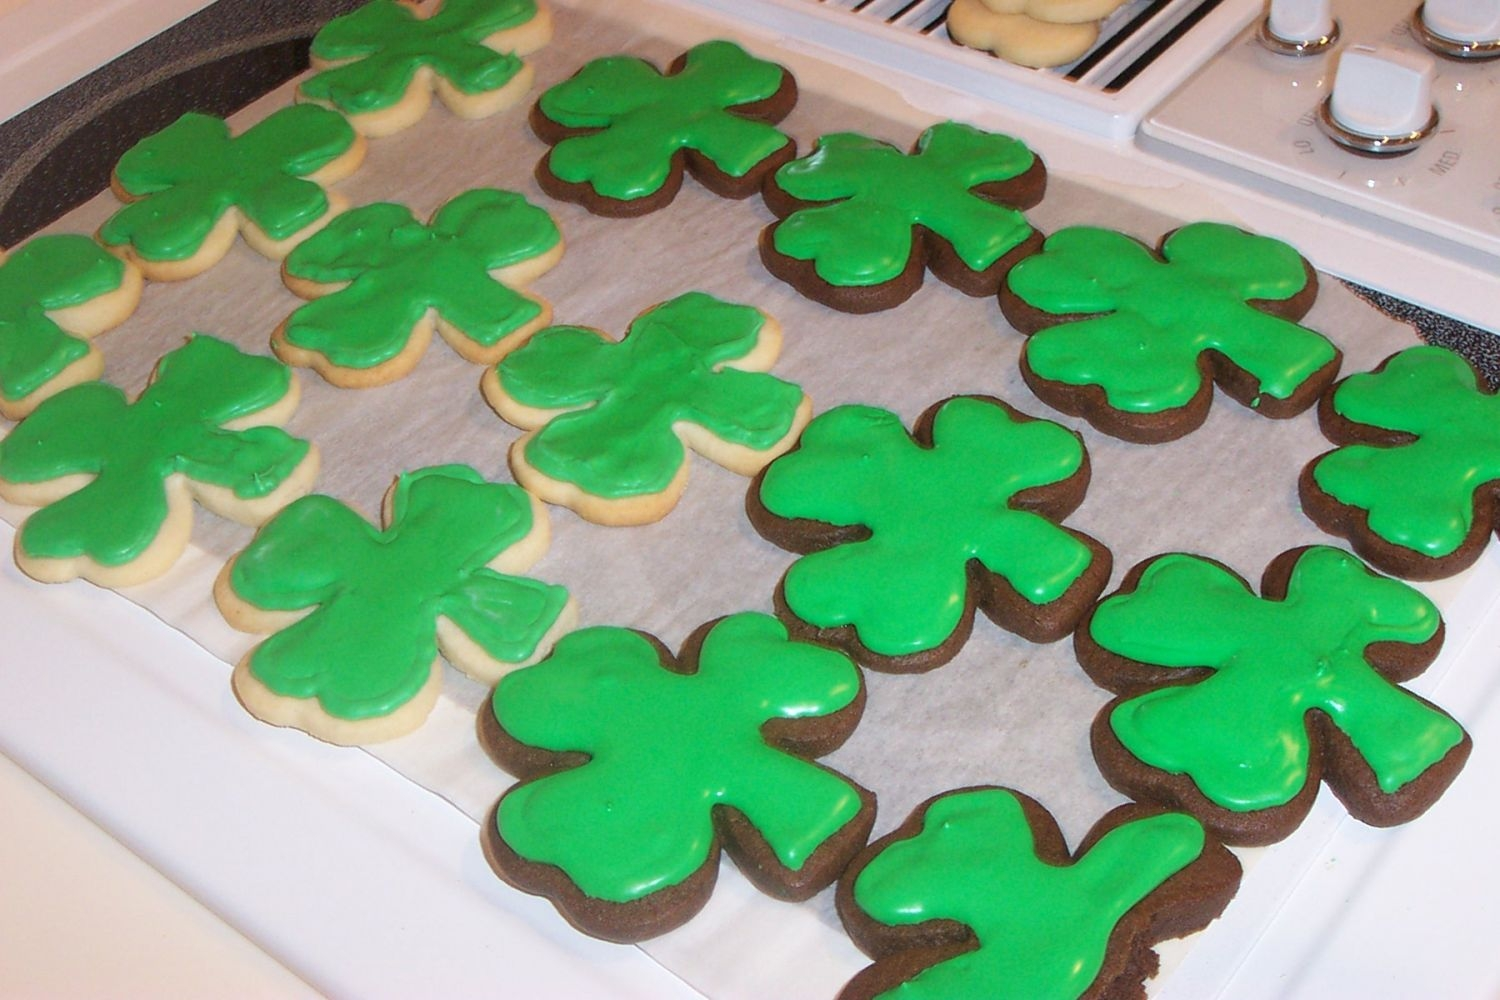 St. Patty's Day Chocolate & Sugar Shamrock Cookies  Some No Fail Sugar Cookies and Rolled Chocolate Cookies with royal icing. I just took a quick shot of them as they were drying, waiting to...